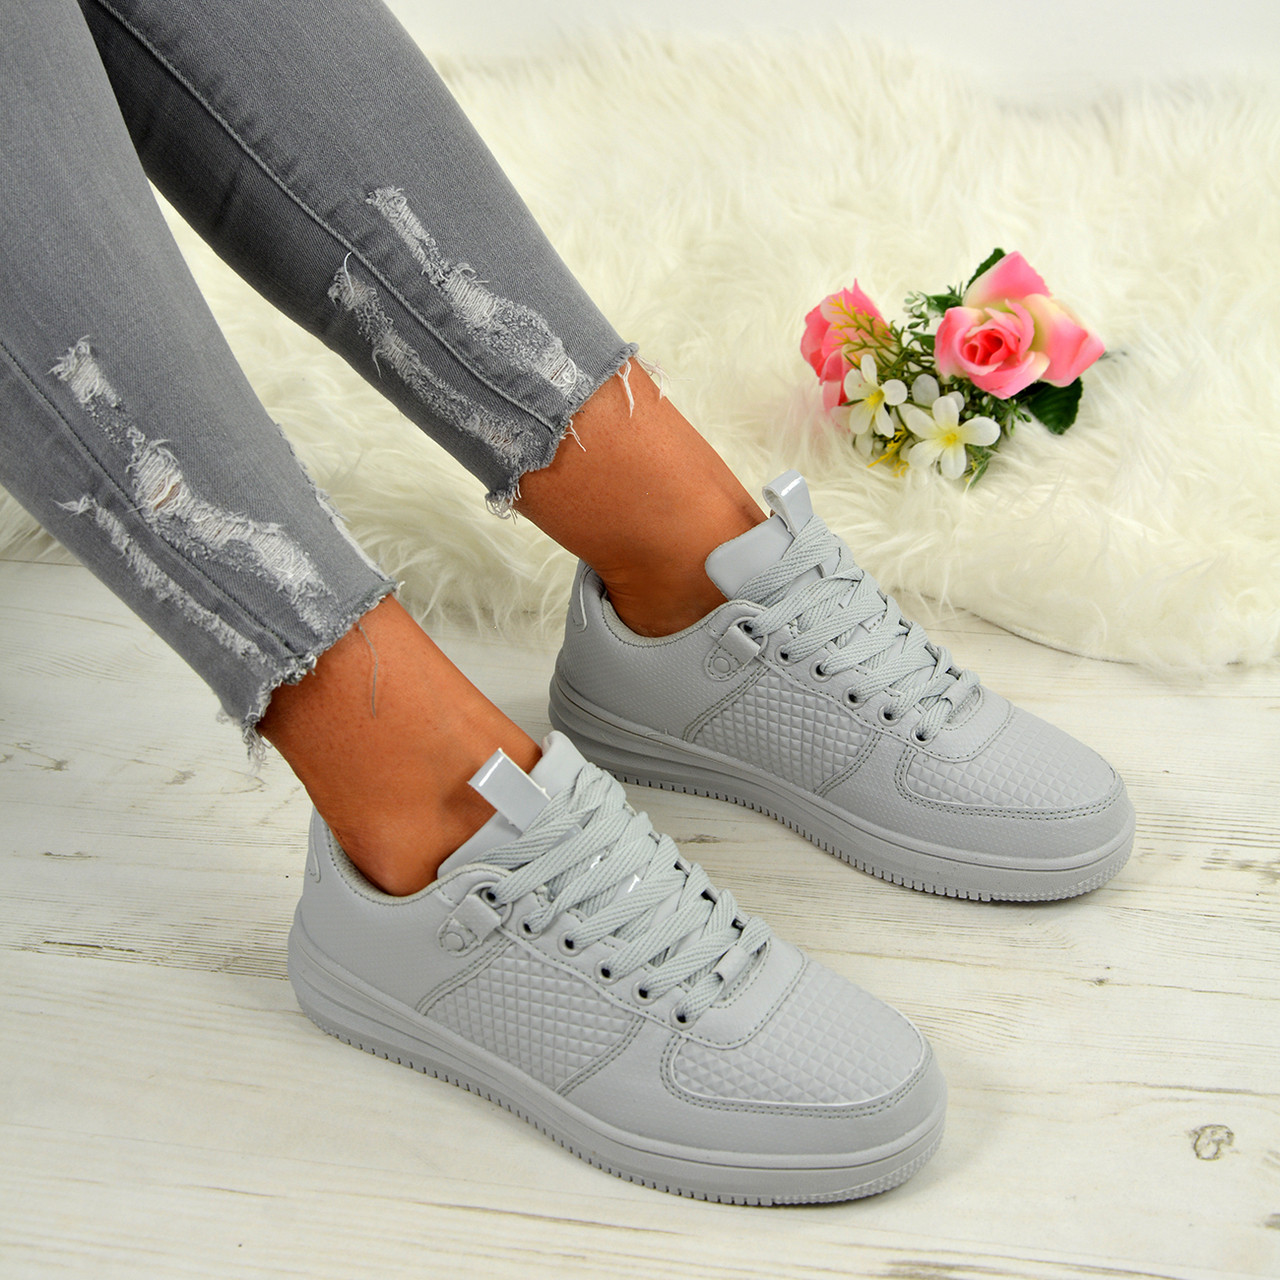 Ladies Womens Slip On Trainers Casual Walking Fashion Flat Silver Shoes Size 5 6